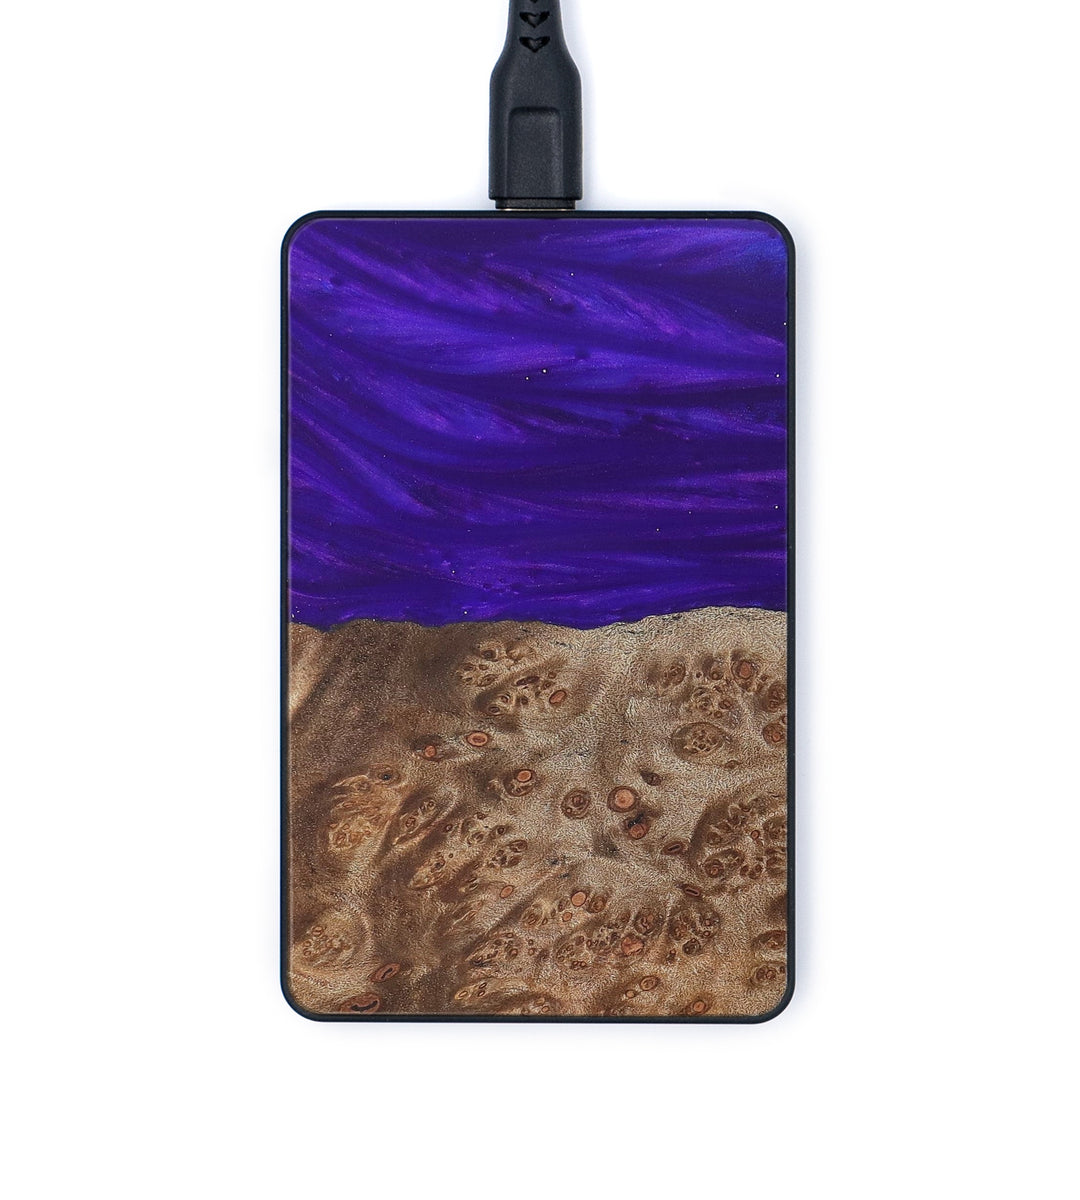 Thin Wood+Resin Wireless Charger - Brittney (Purple, 367969)